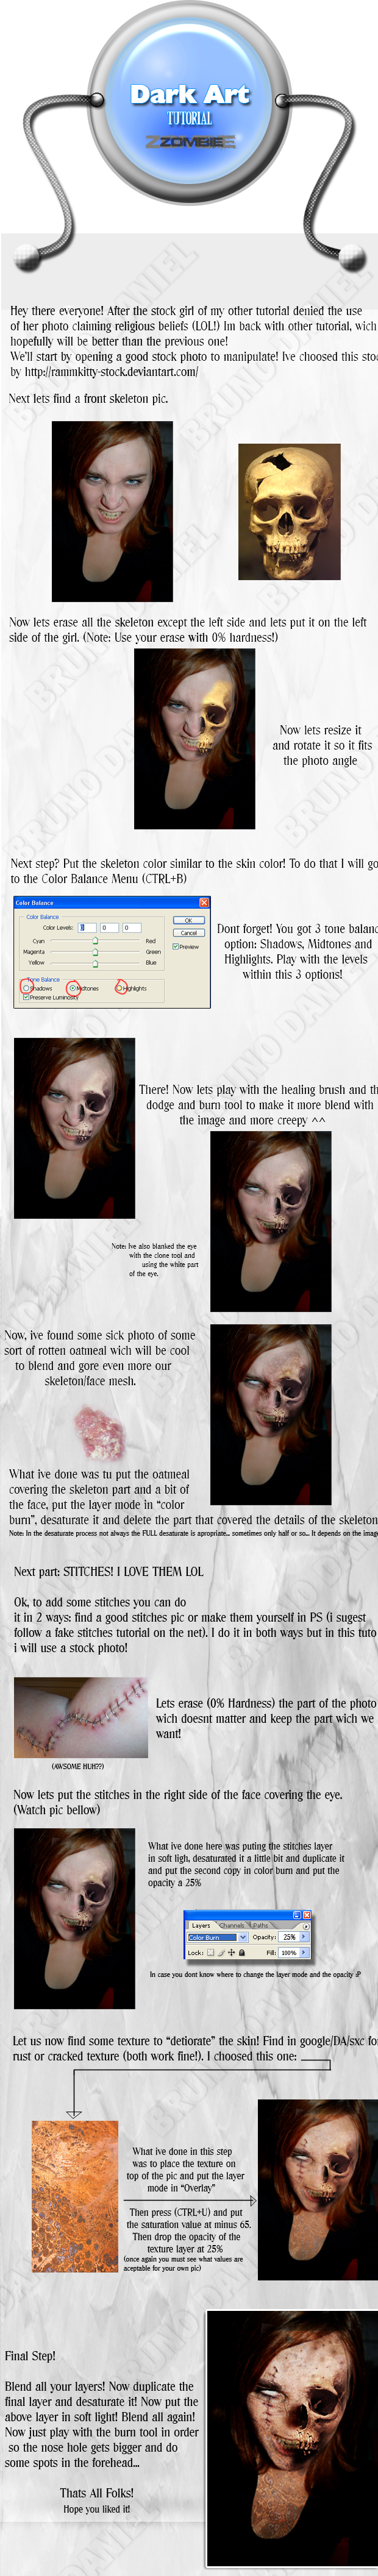 Tutorial Dark Art_Zombie